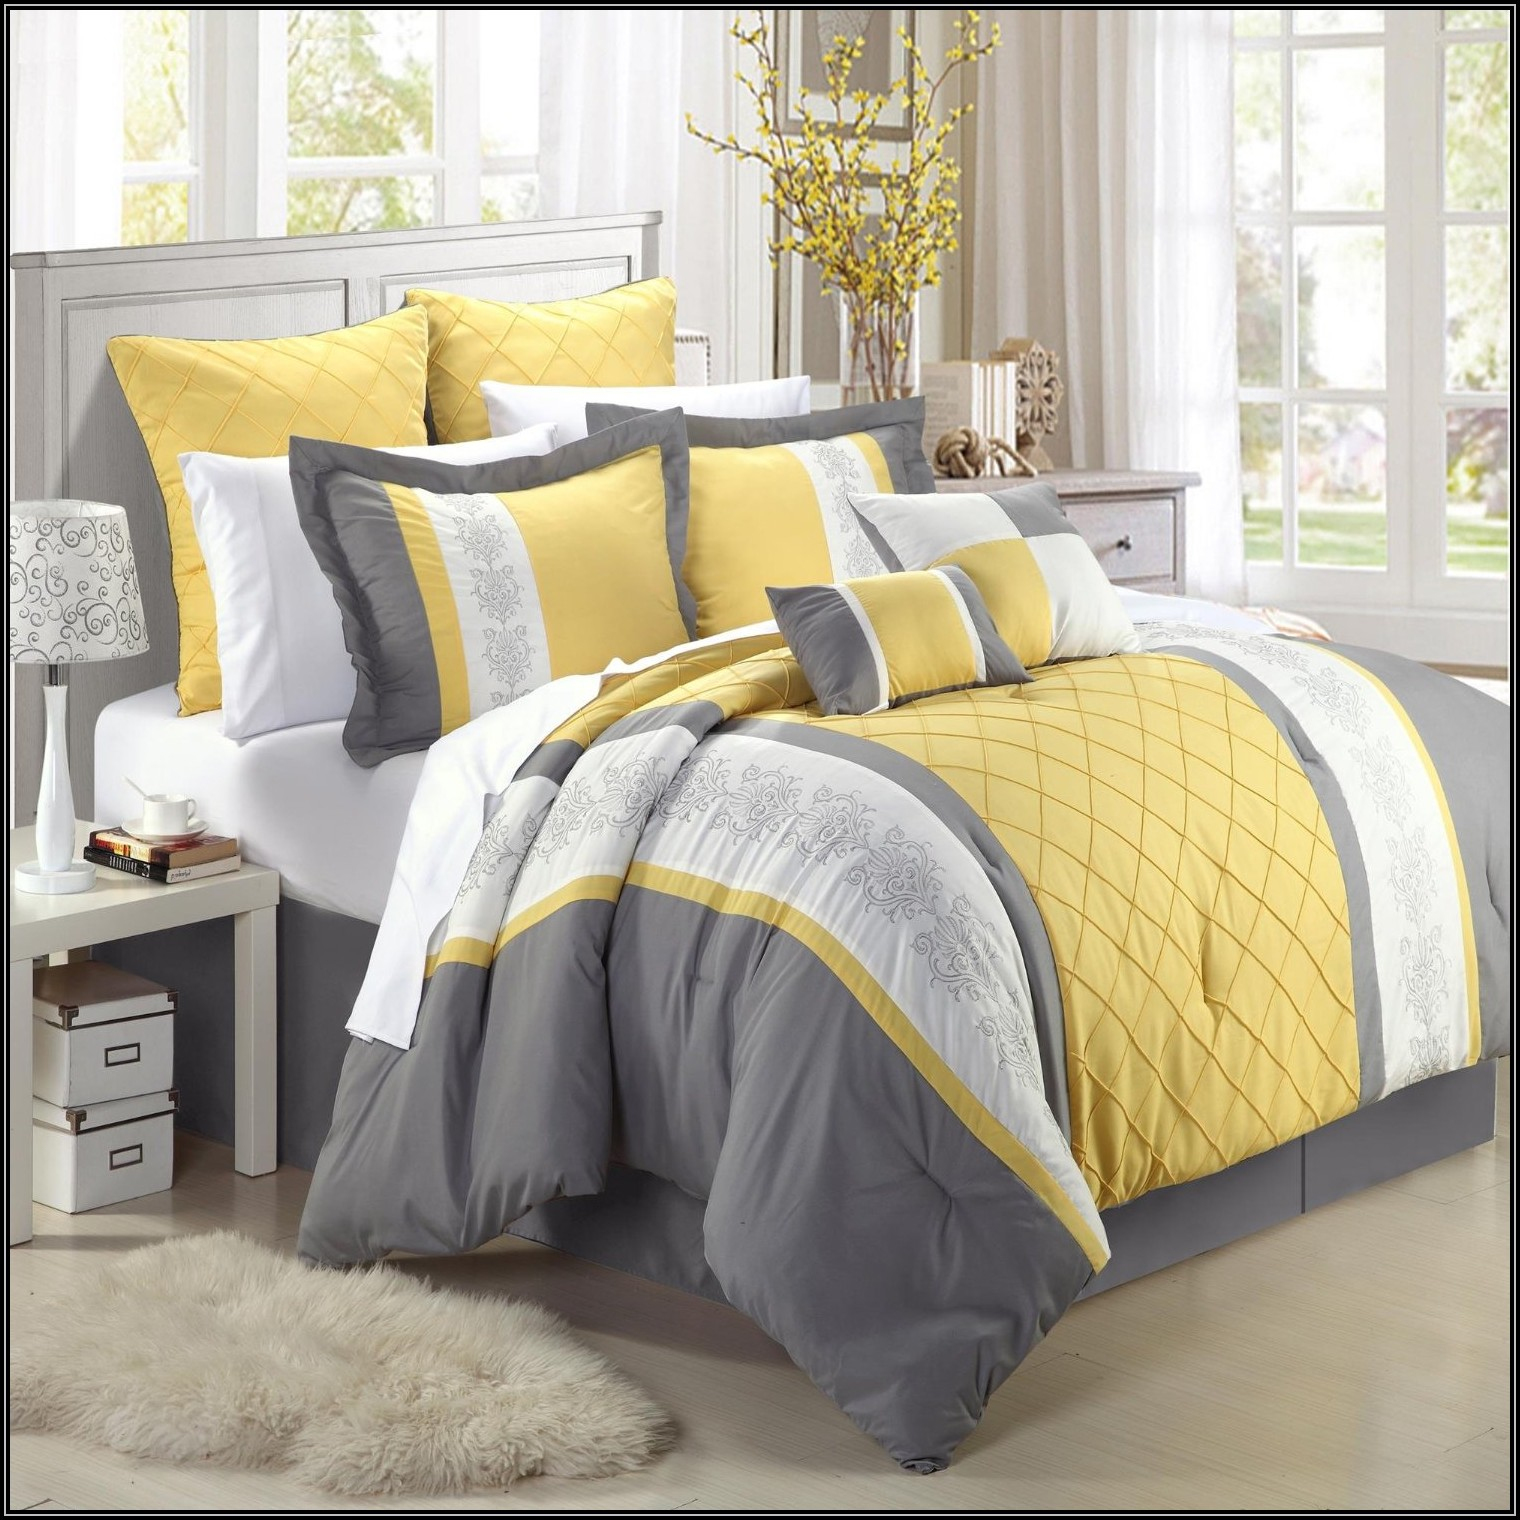 Gray And Yellow Bedroom: Some Ideas Of The Stylish Decorations And Designs Of The